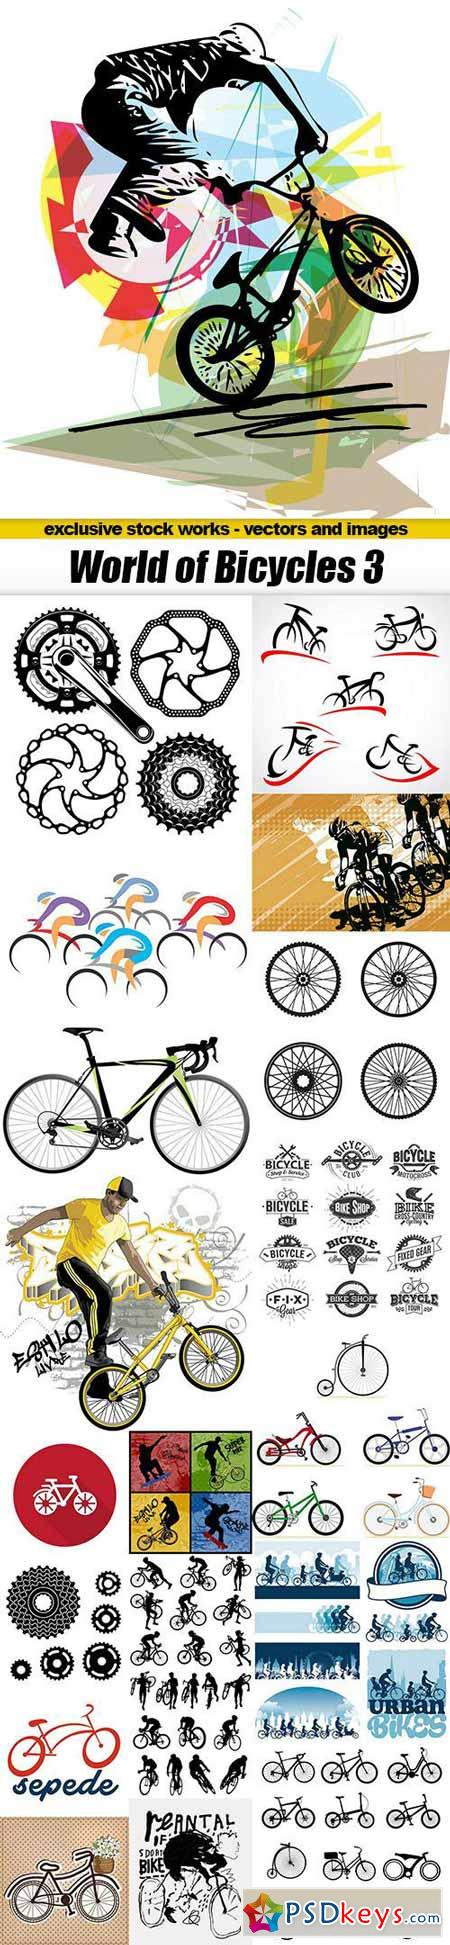 World of Bicycles 3 - 19xEPS, AI